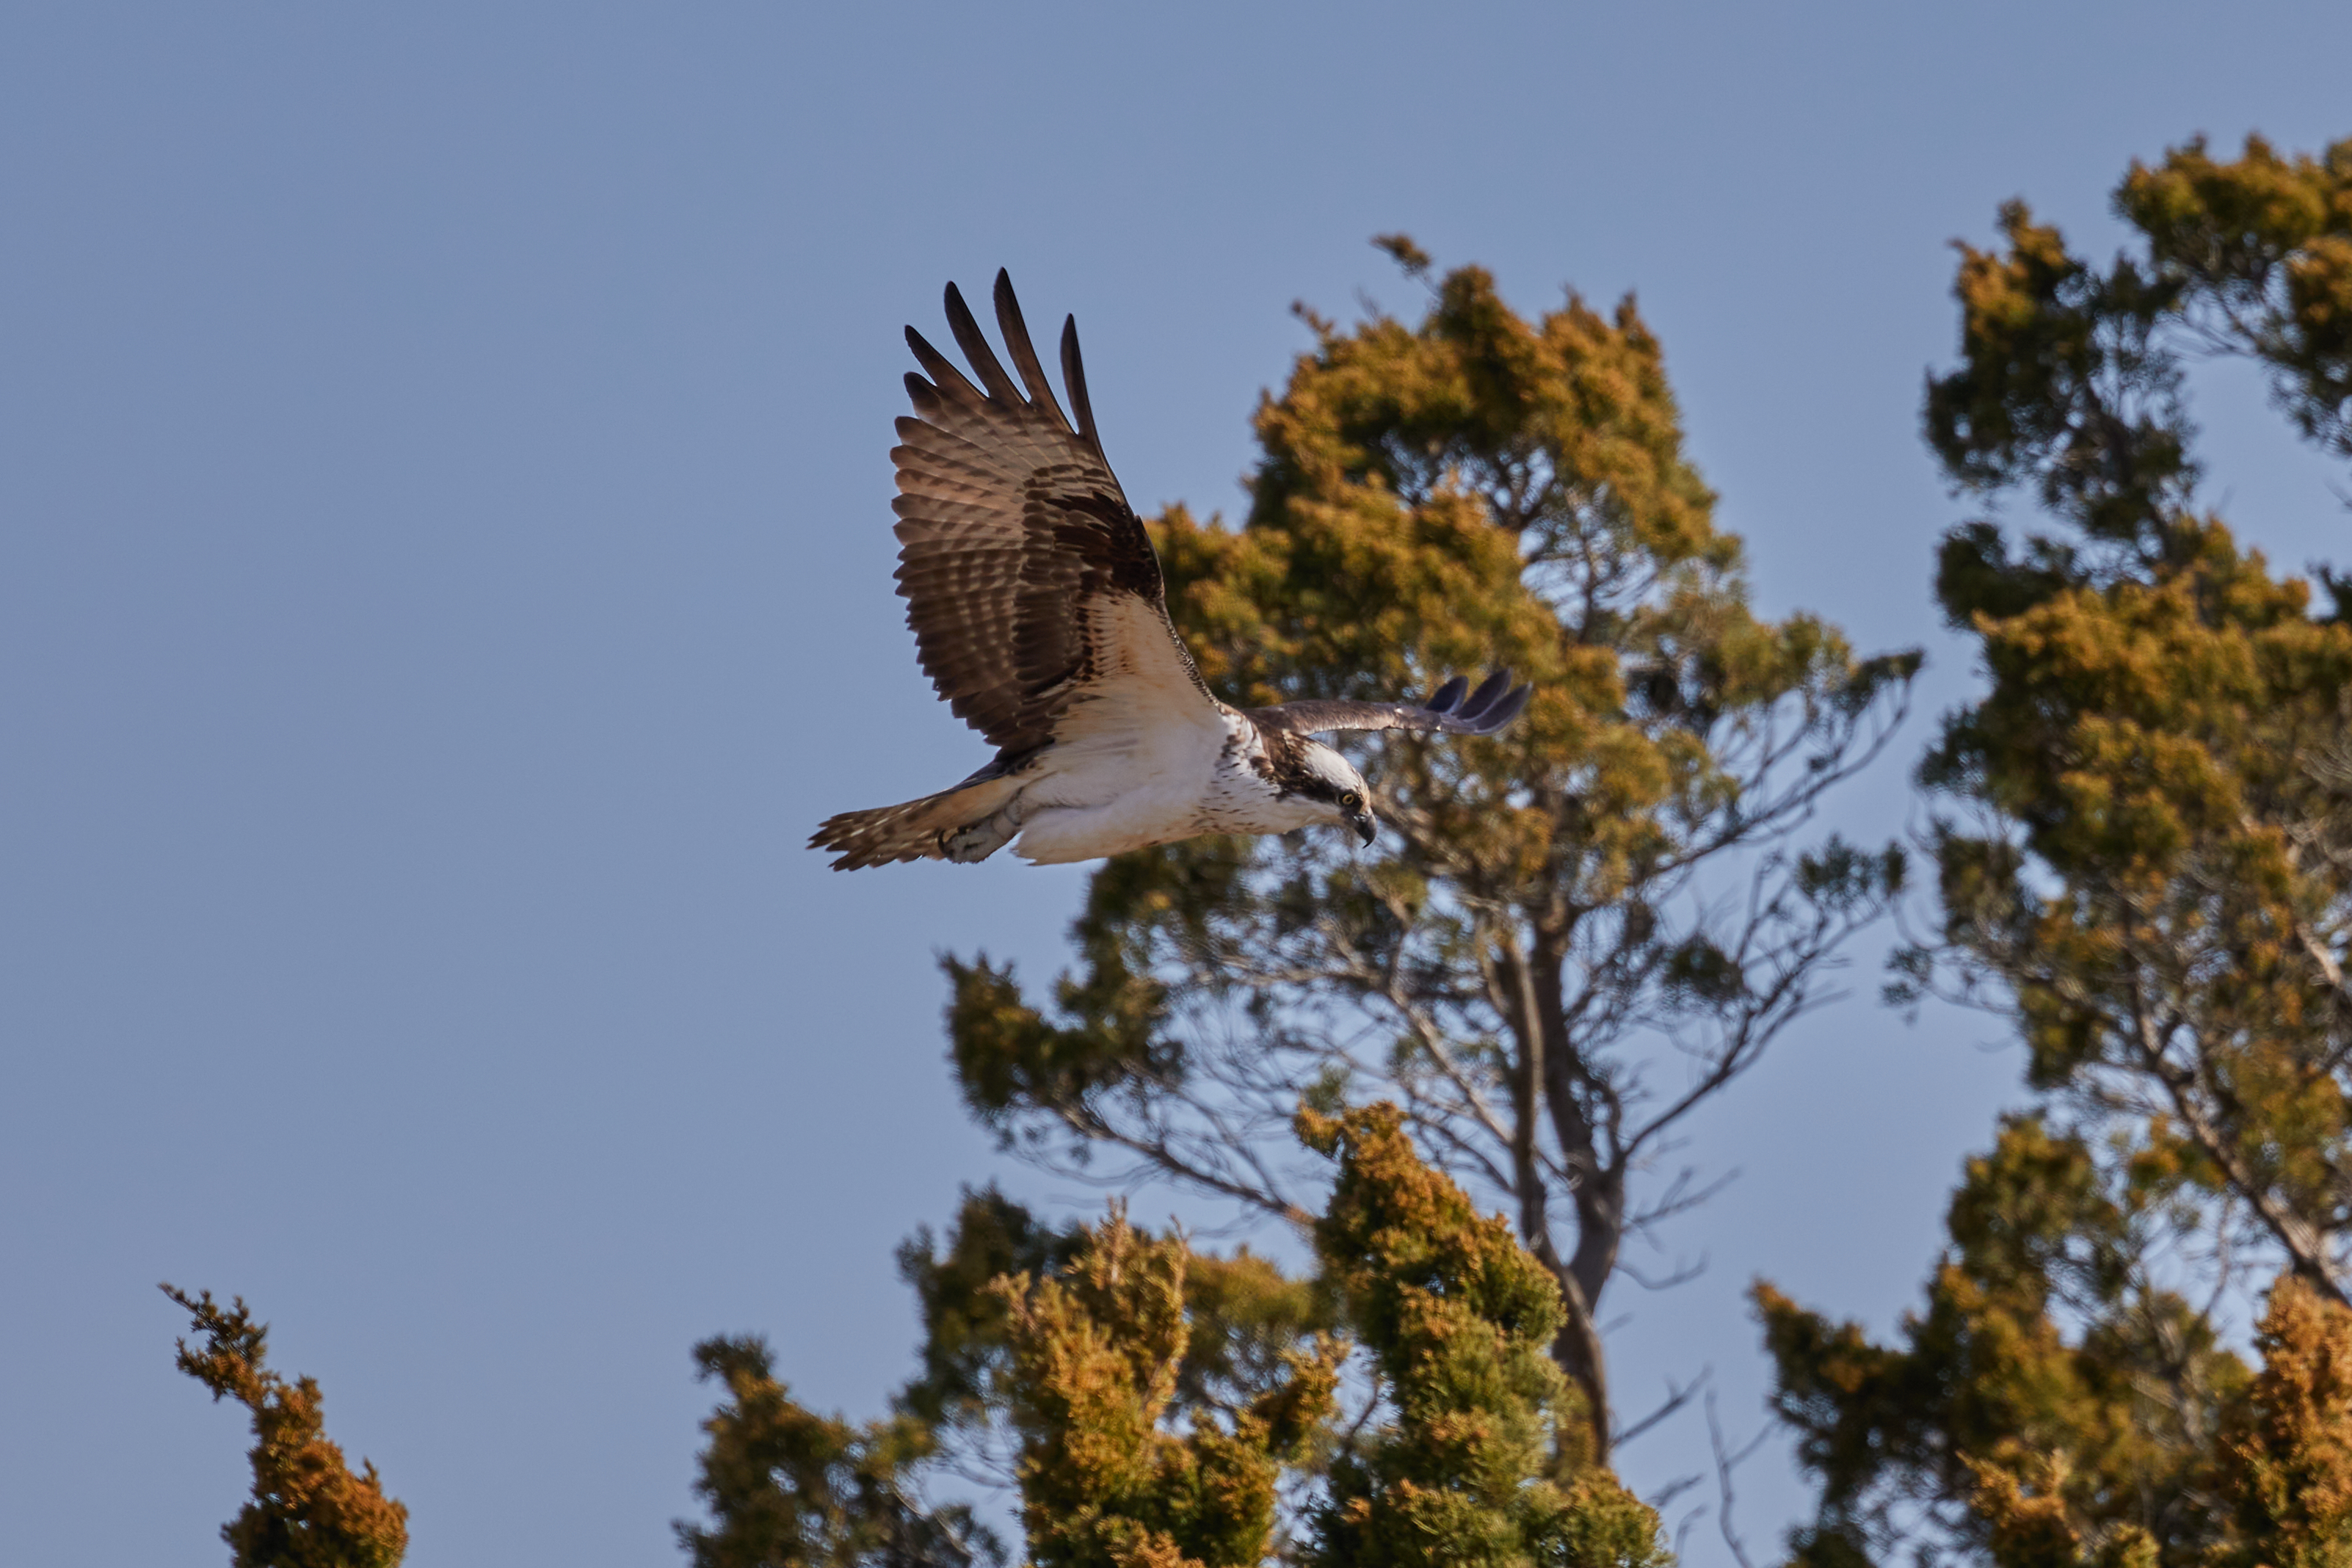 Osprey in flight, with trees in background.